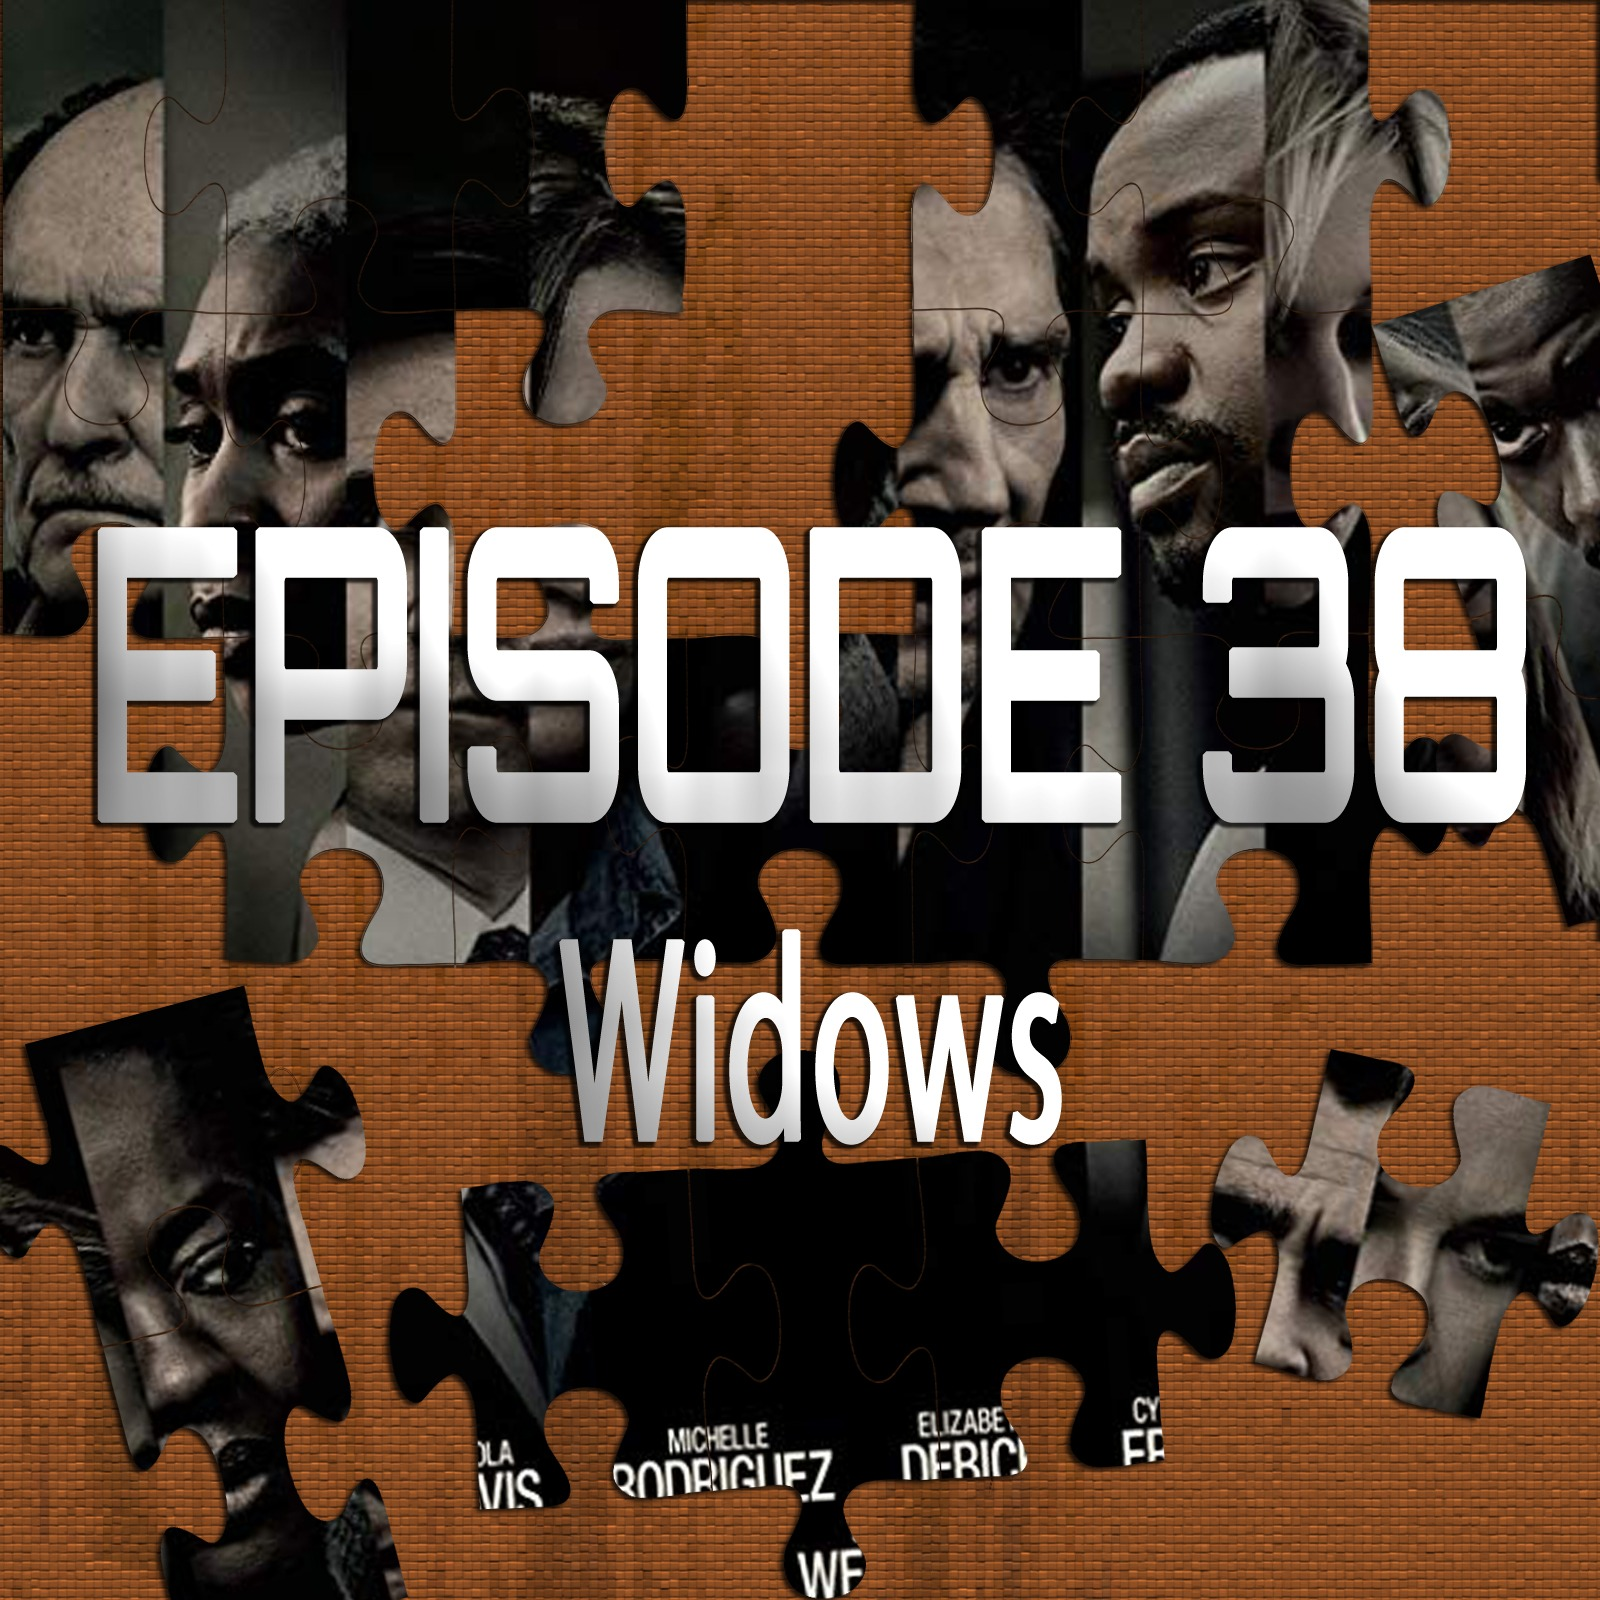 Widows (Featuring Kris Krainock)